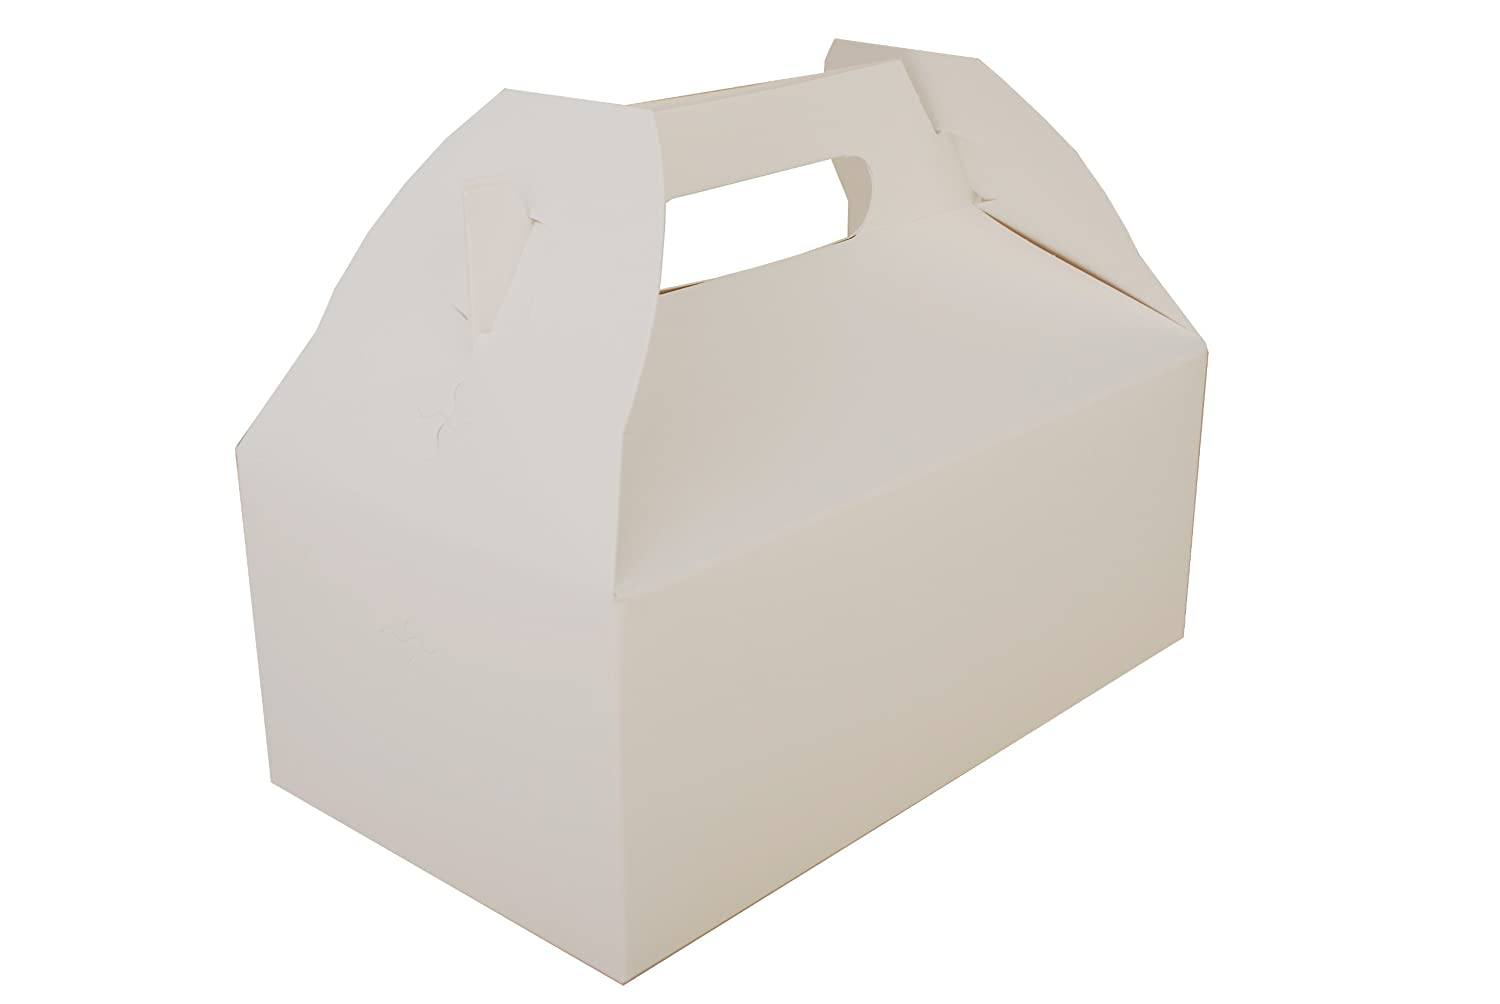 Southern Champion Tray 2701 Paperboard White Small Barn Style Carry Out Box, 5-lb Capacity, 8-7/8